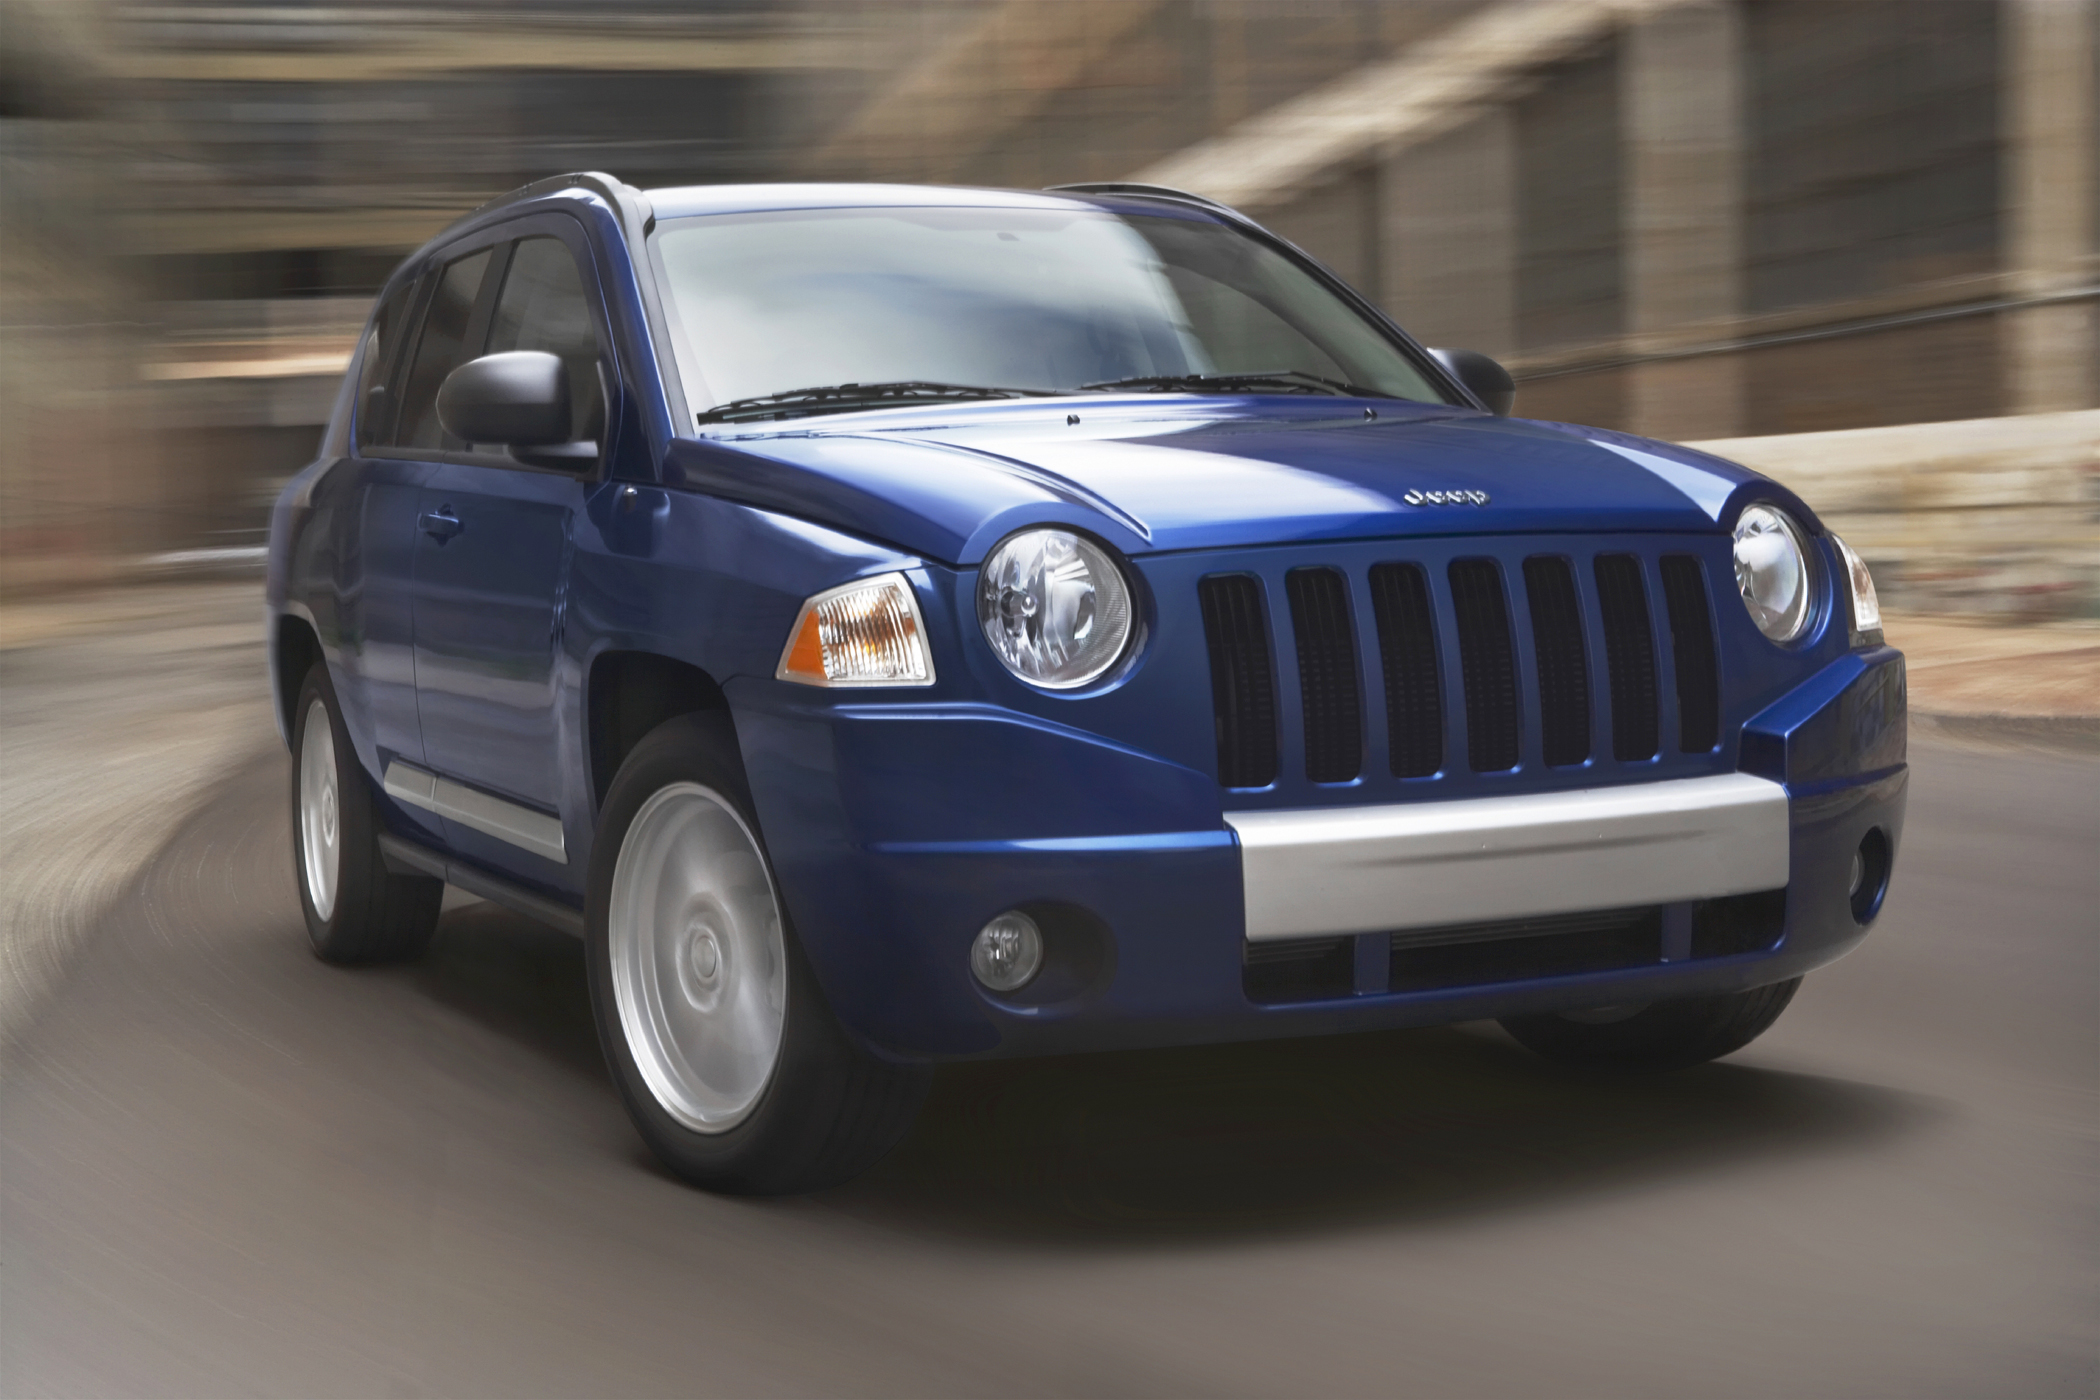 2010 jeep compass is sensible fuel-efficient compact suv - new on